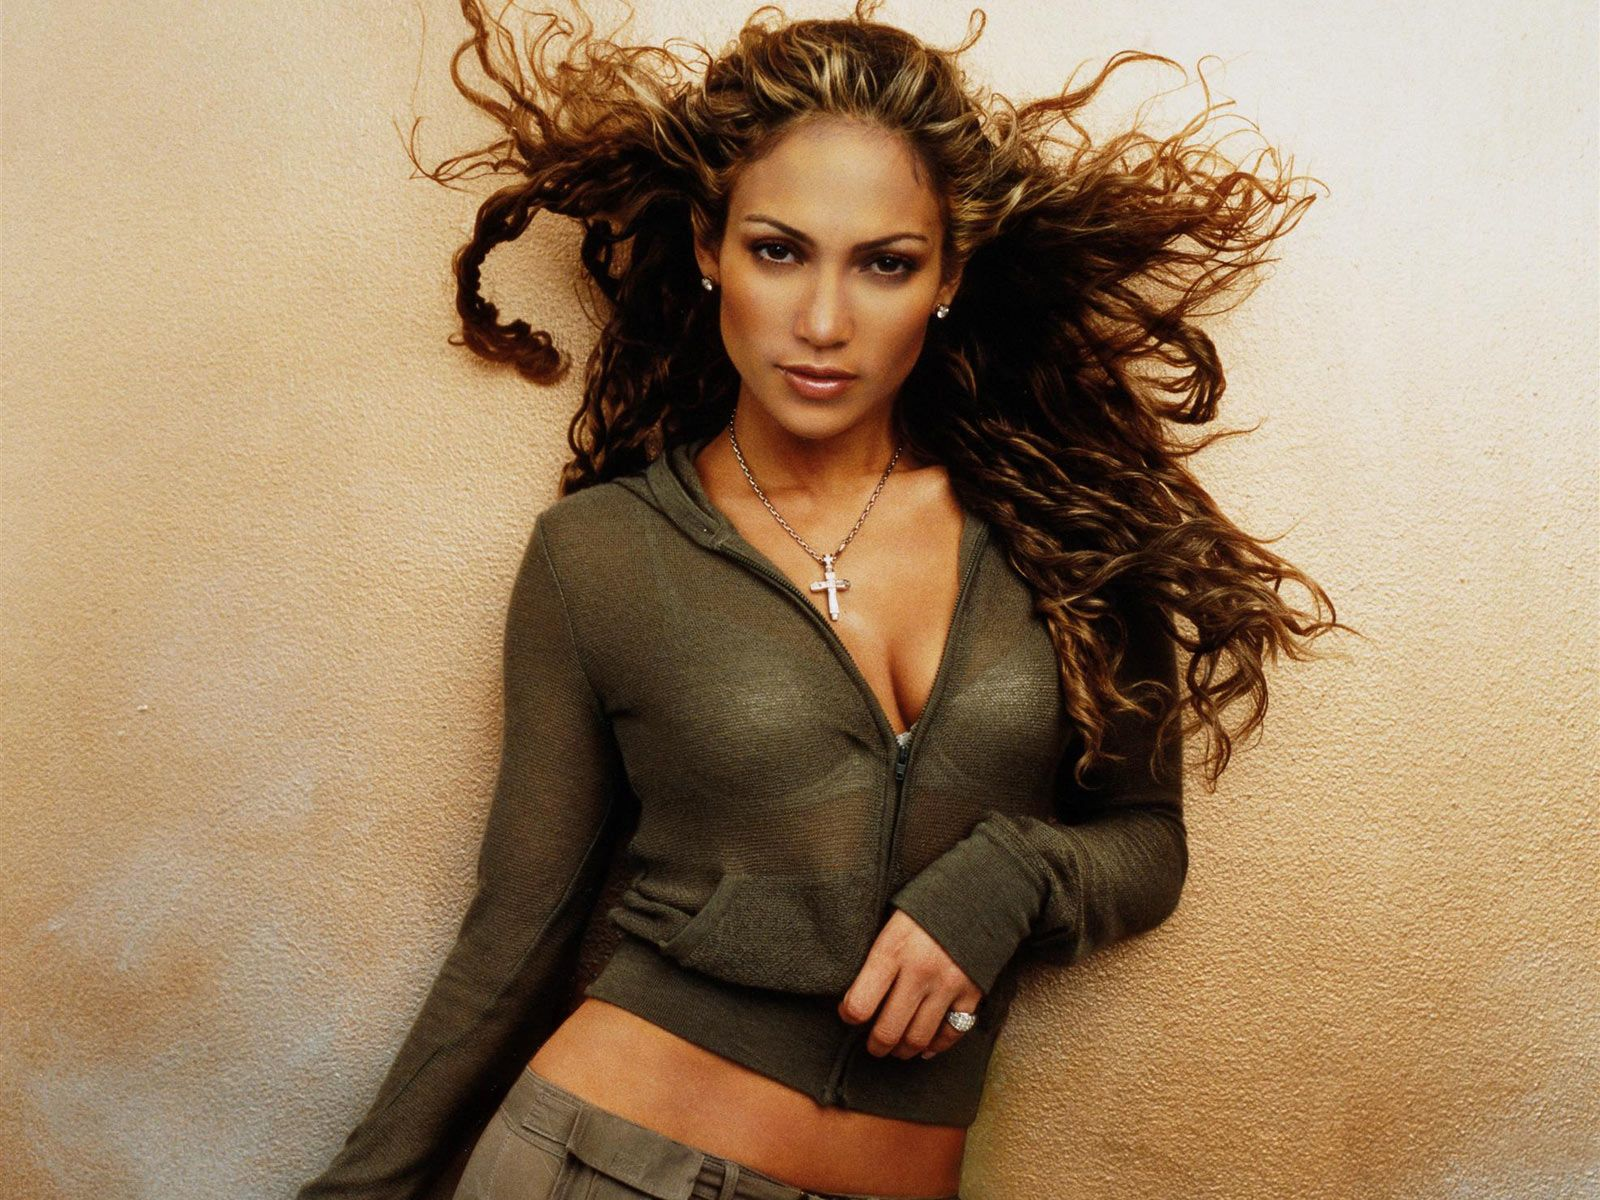 blogspotcom jennifer lopez - photo #3